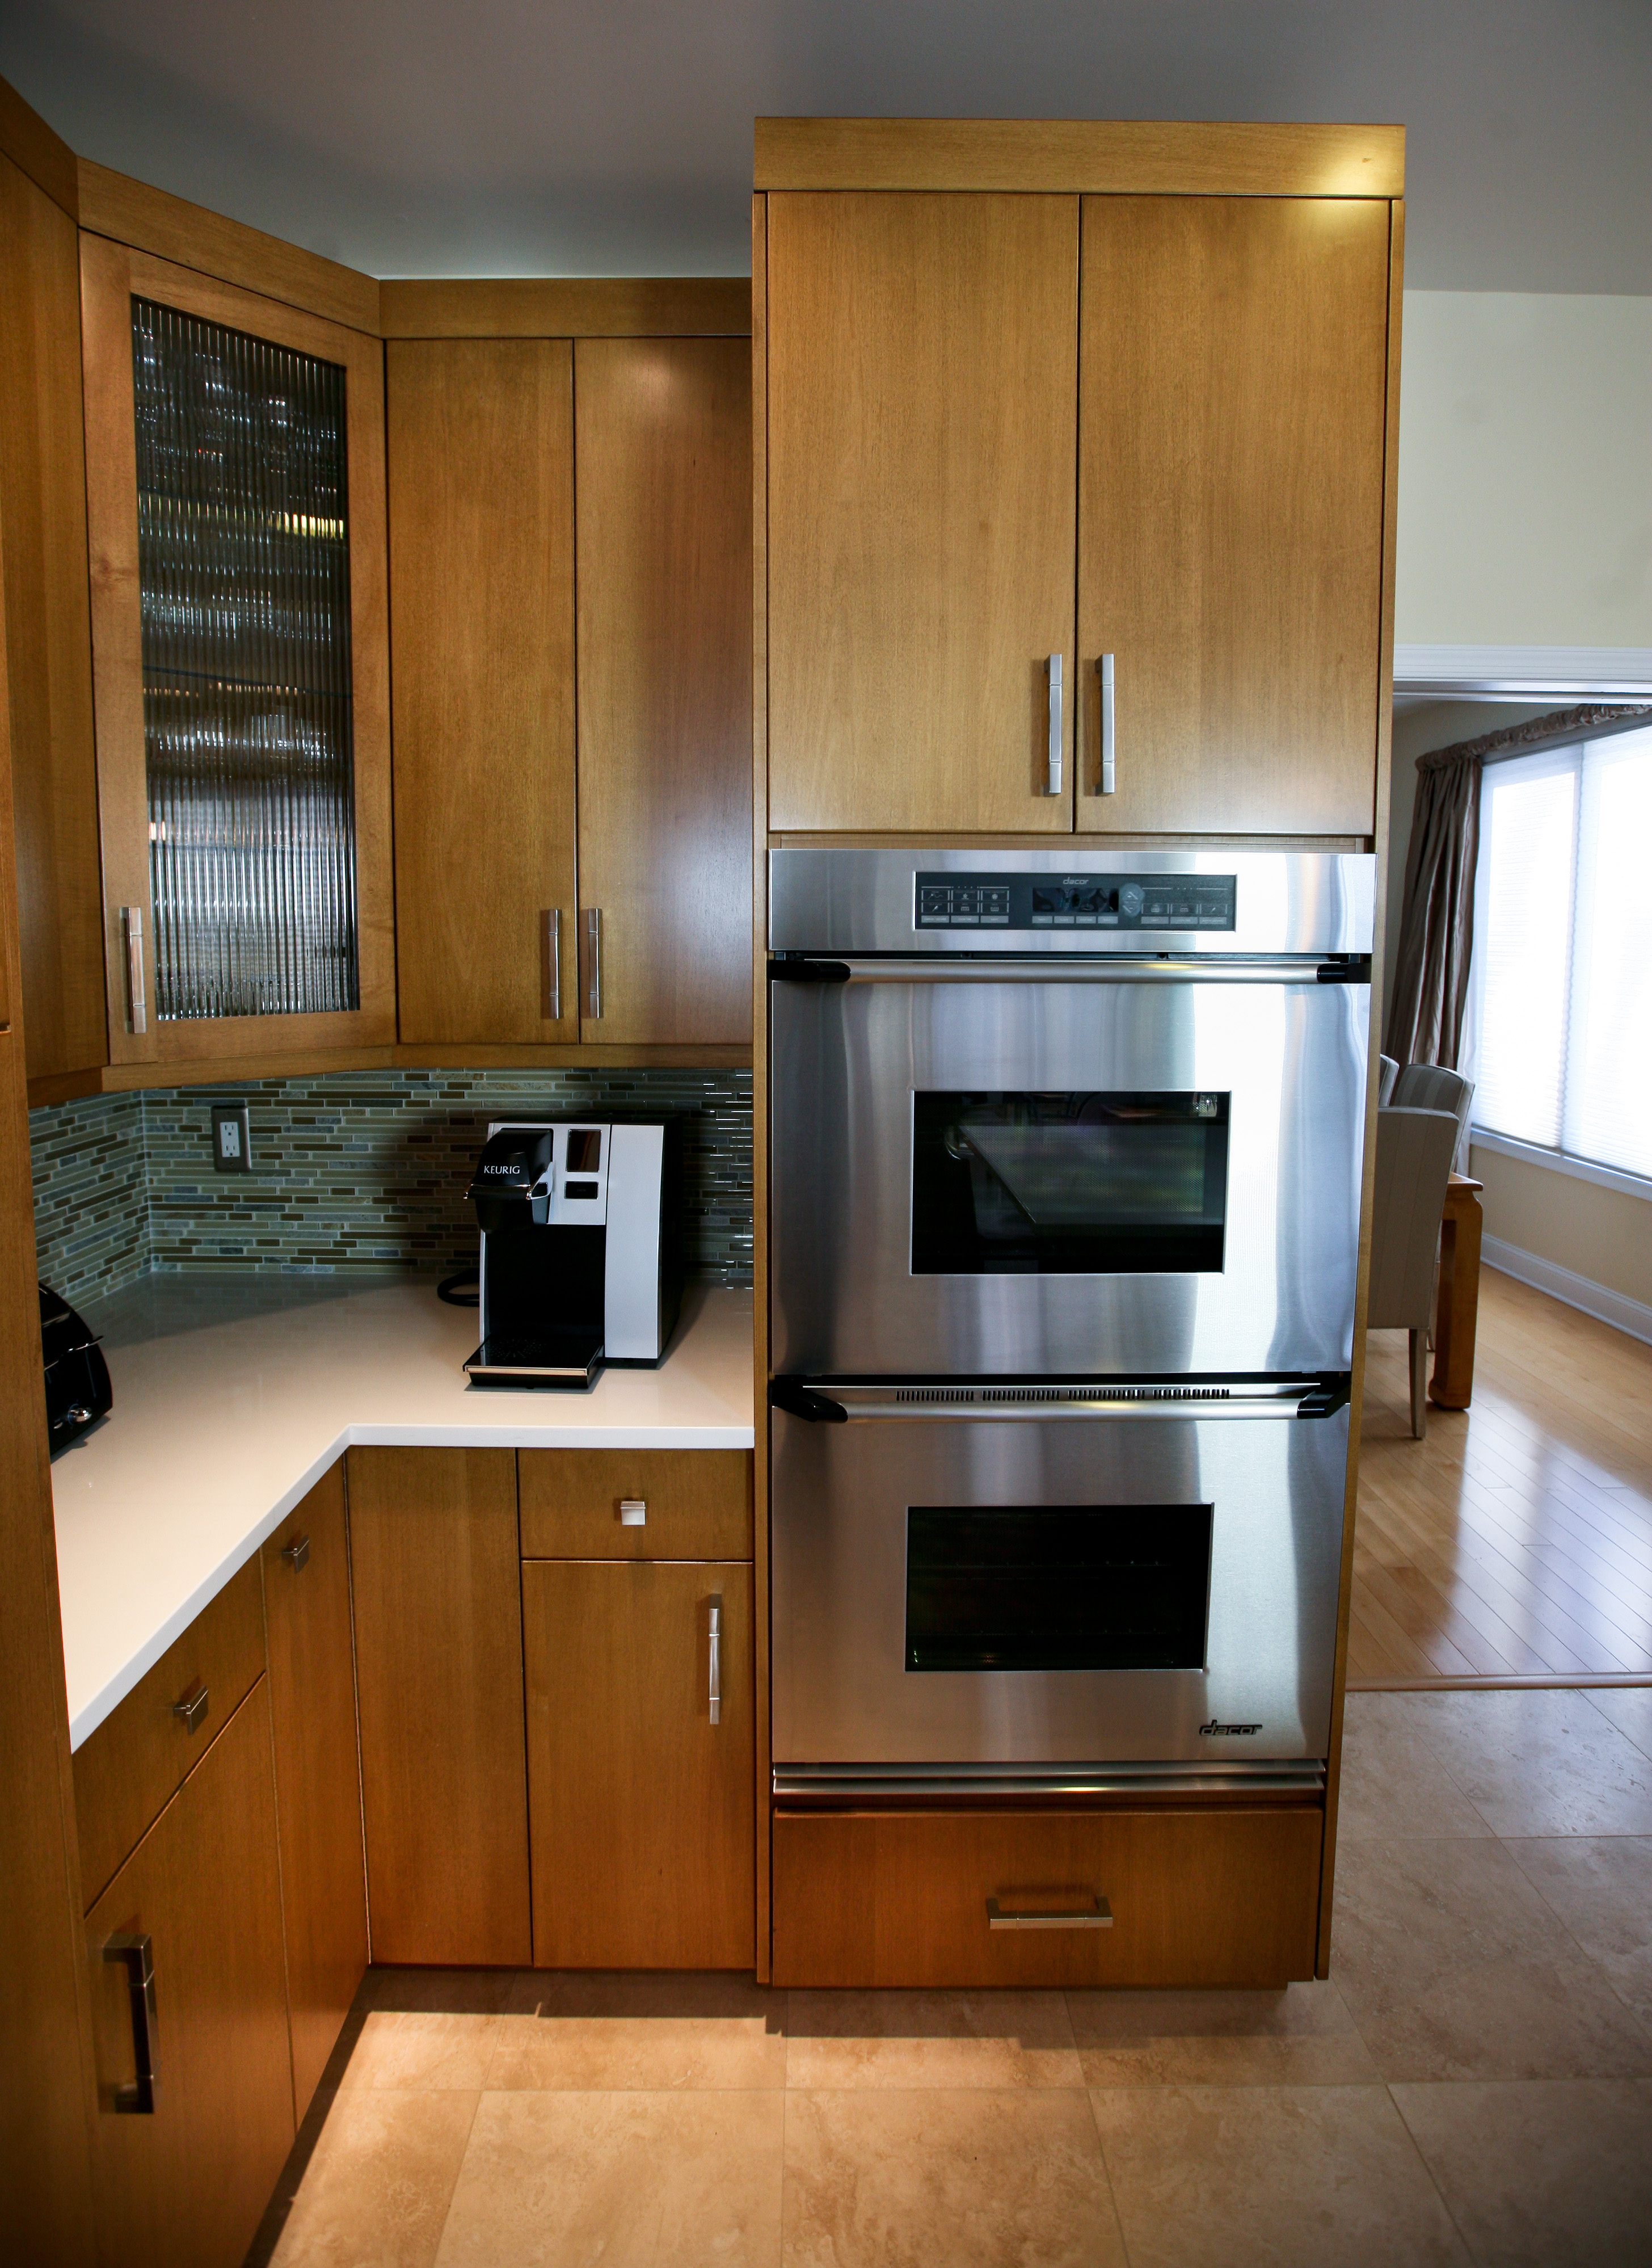 European Kitchen Cabinets Nj - Cooktop and microwave crisp clean lines european cabinet style